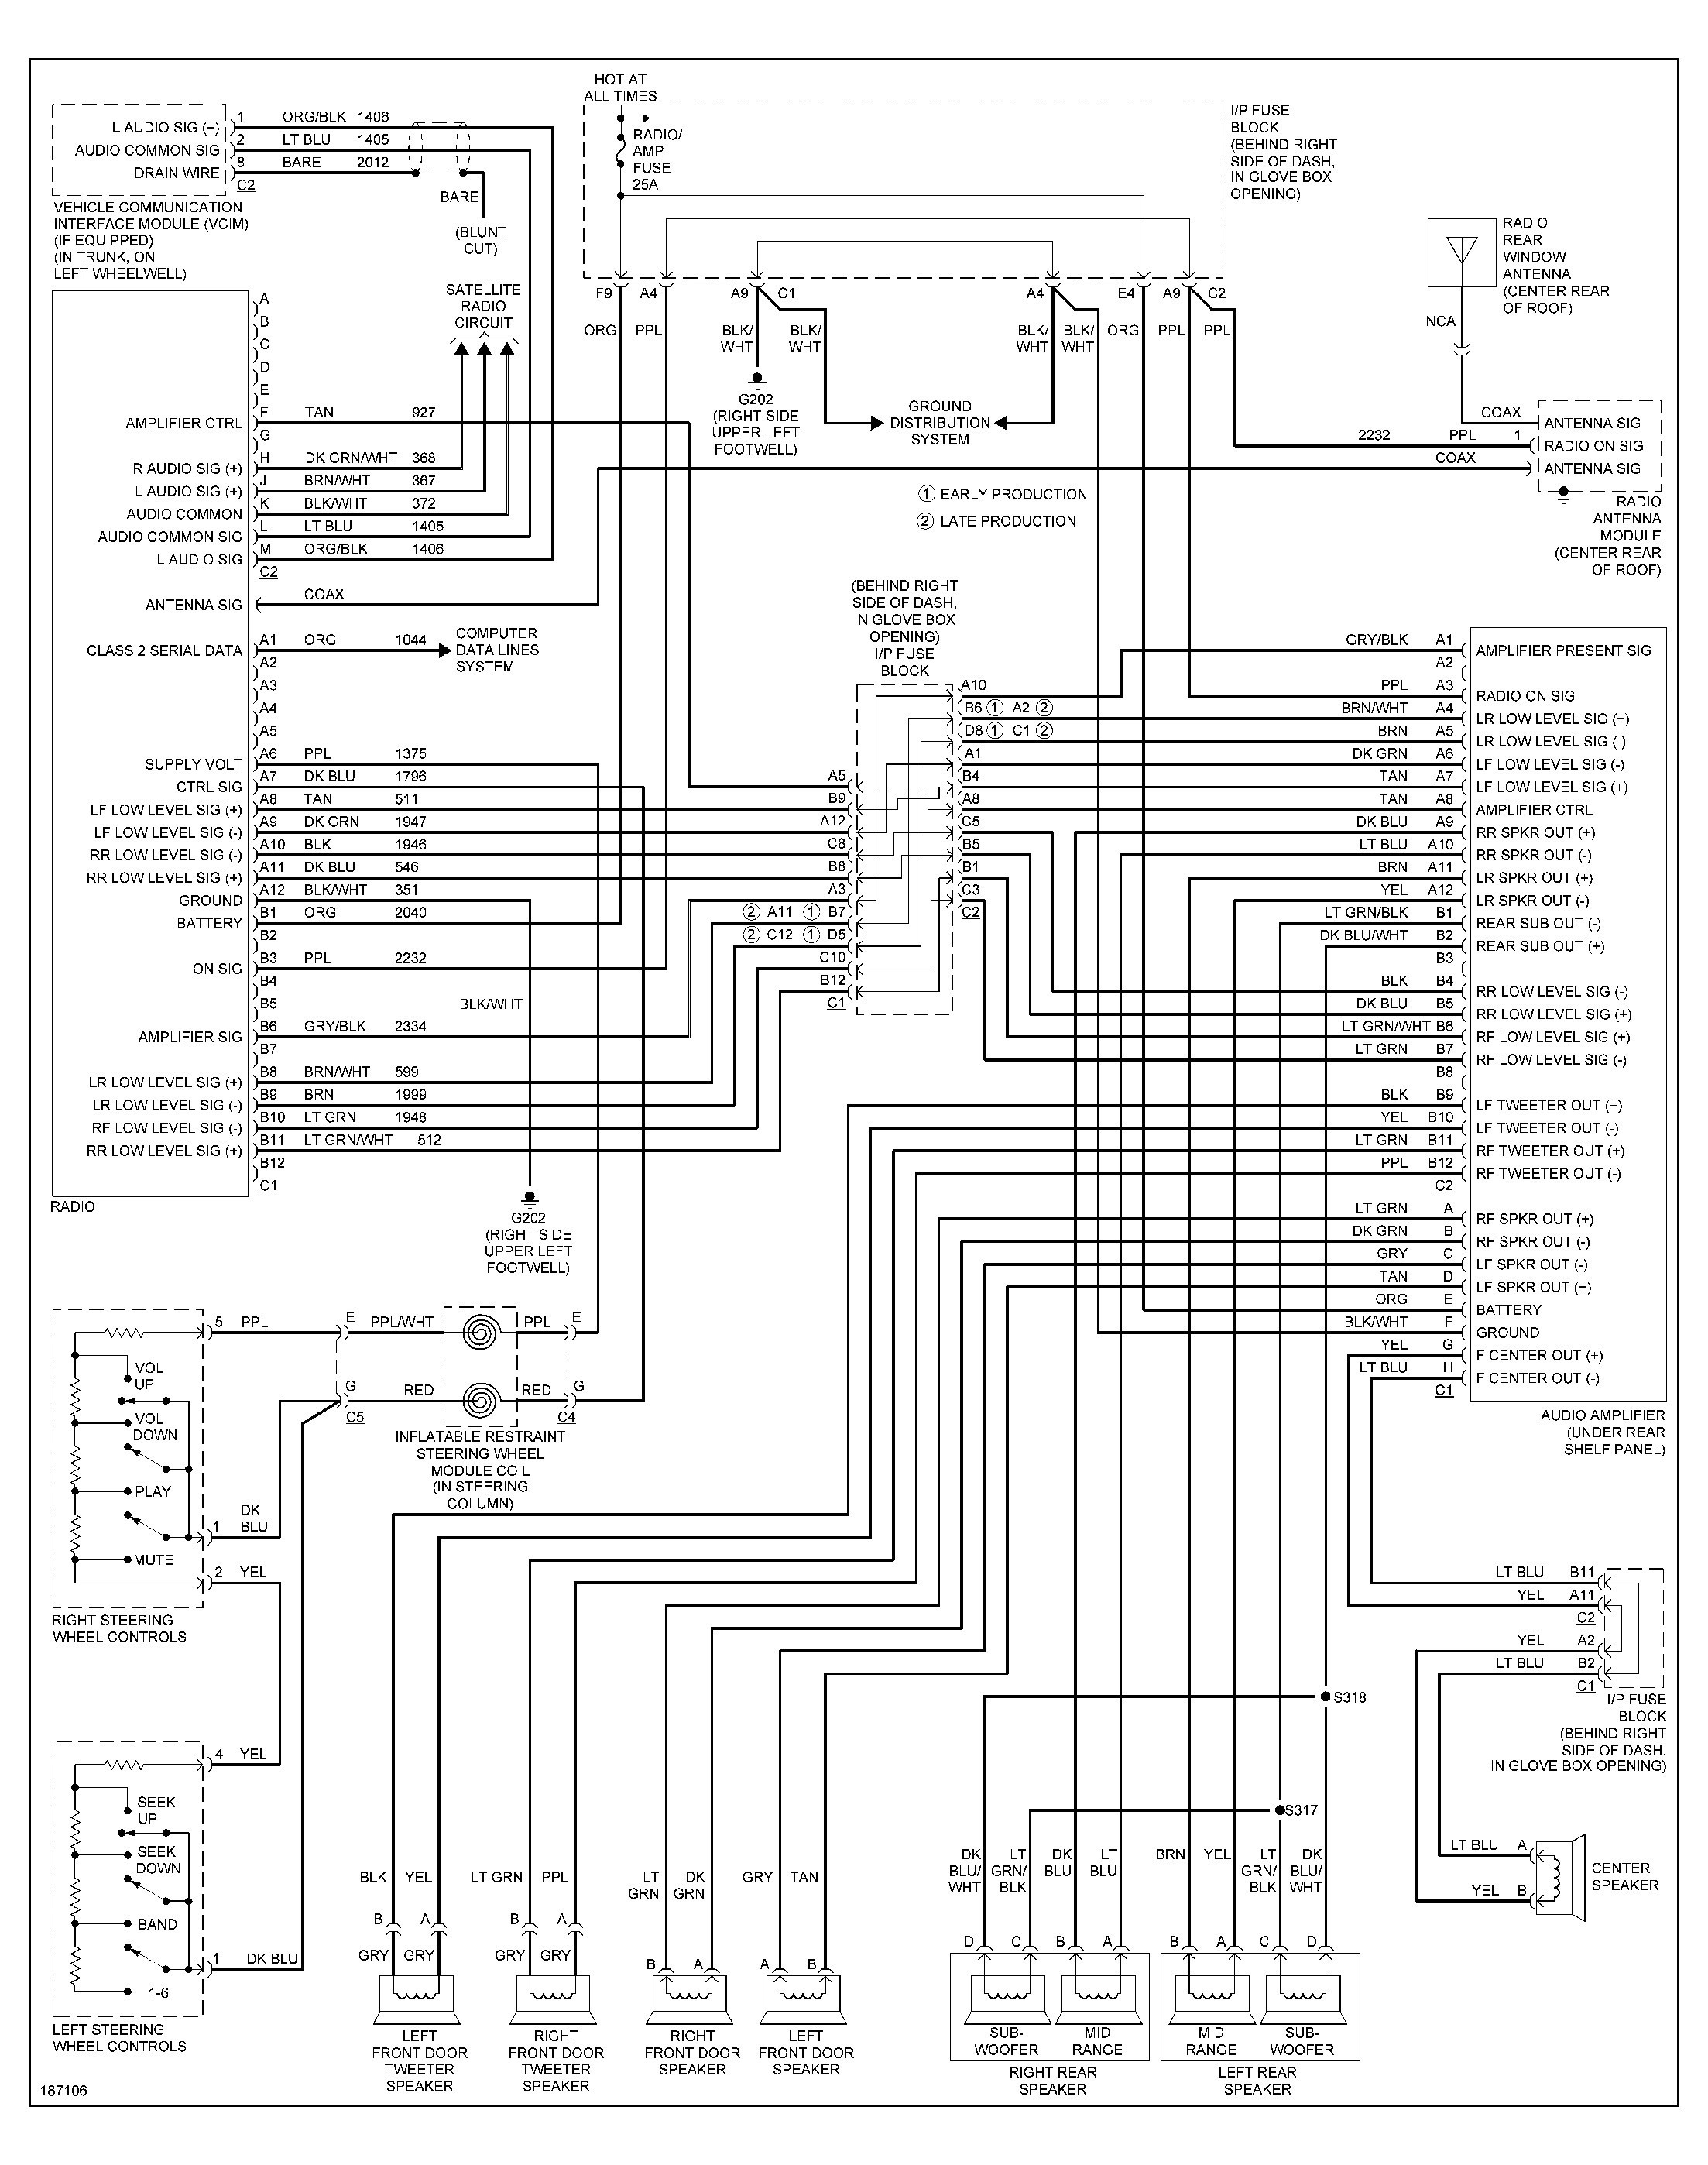 2006 Pontiac Vibe Wiring Diagram Ac | Schematic Diagram on